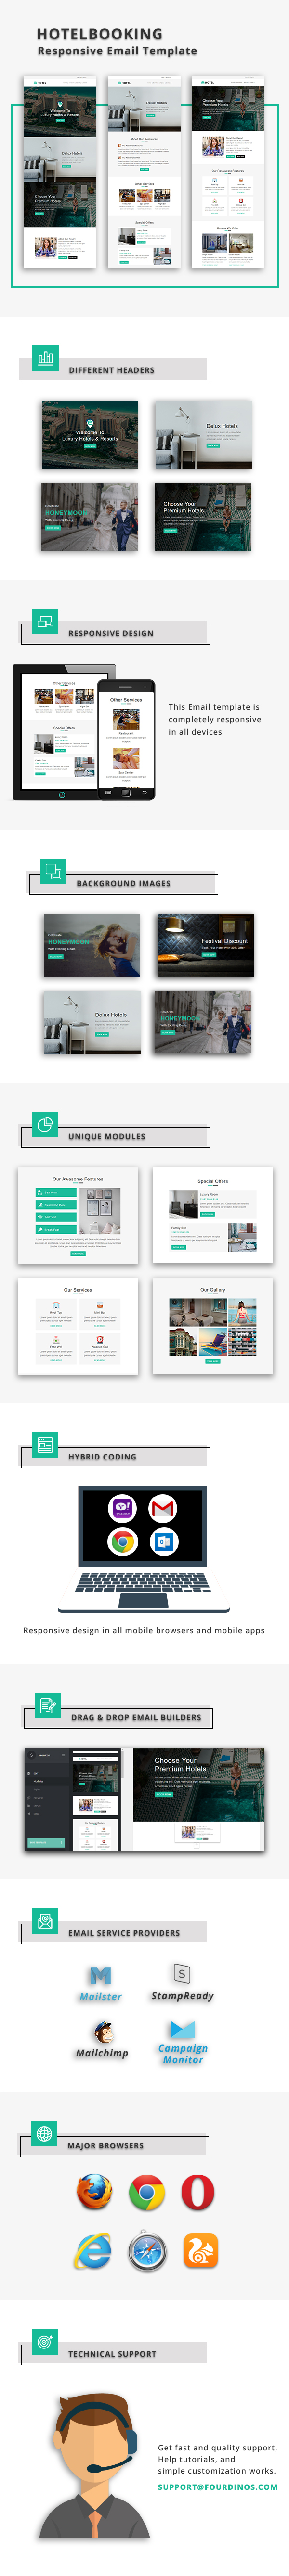 Hotel Booking - Responsive Email Template